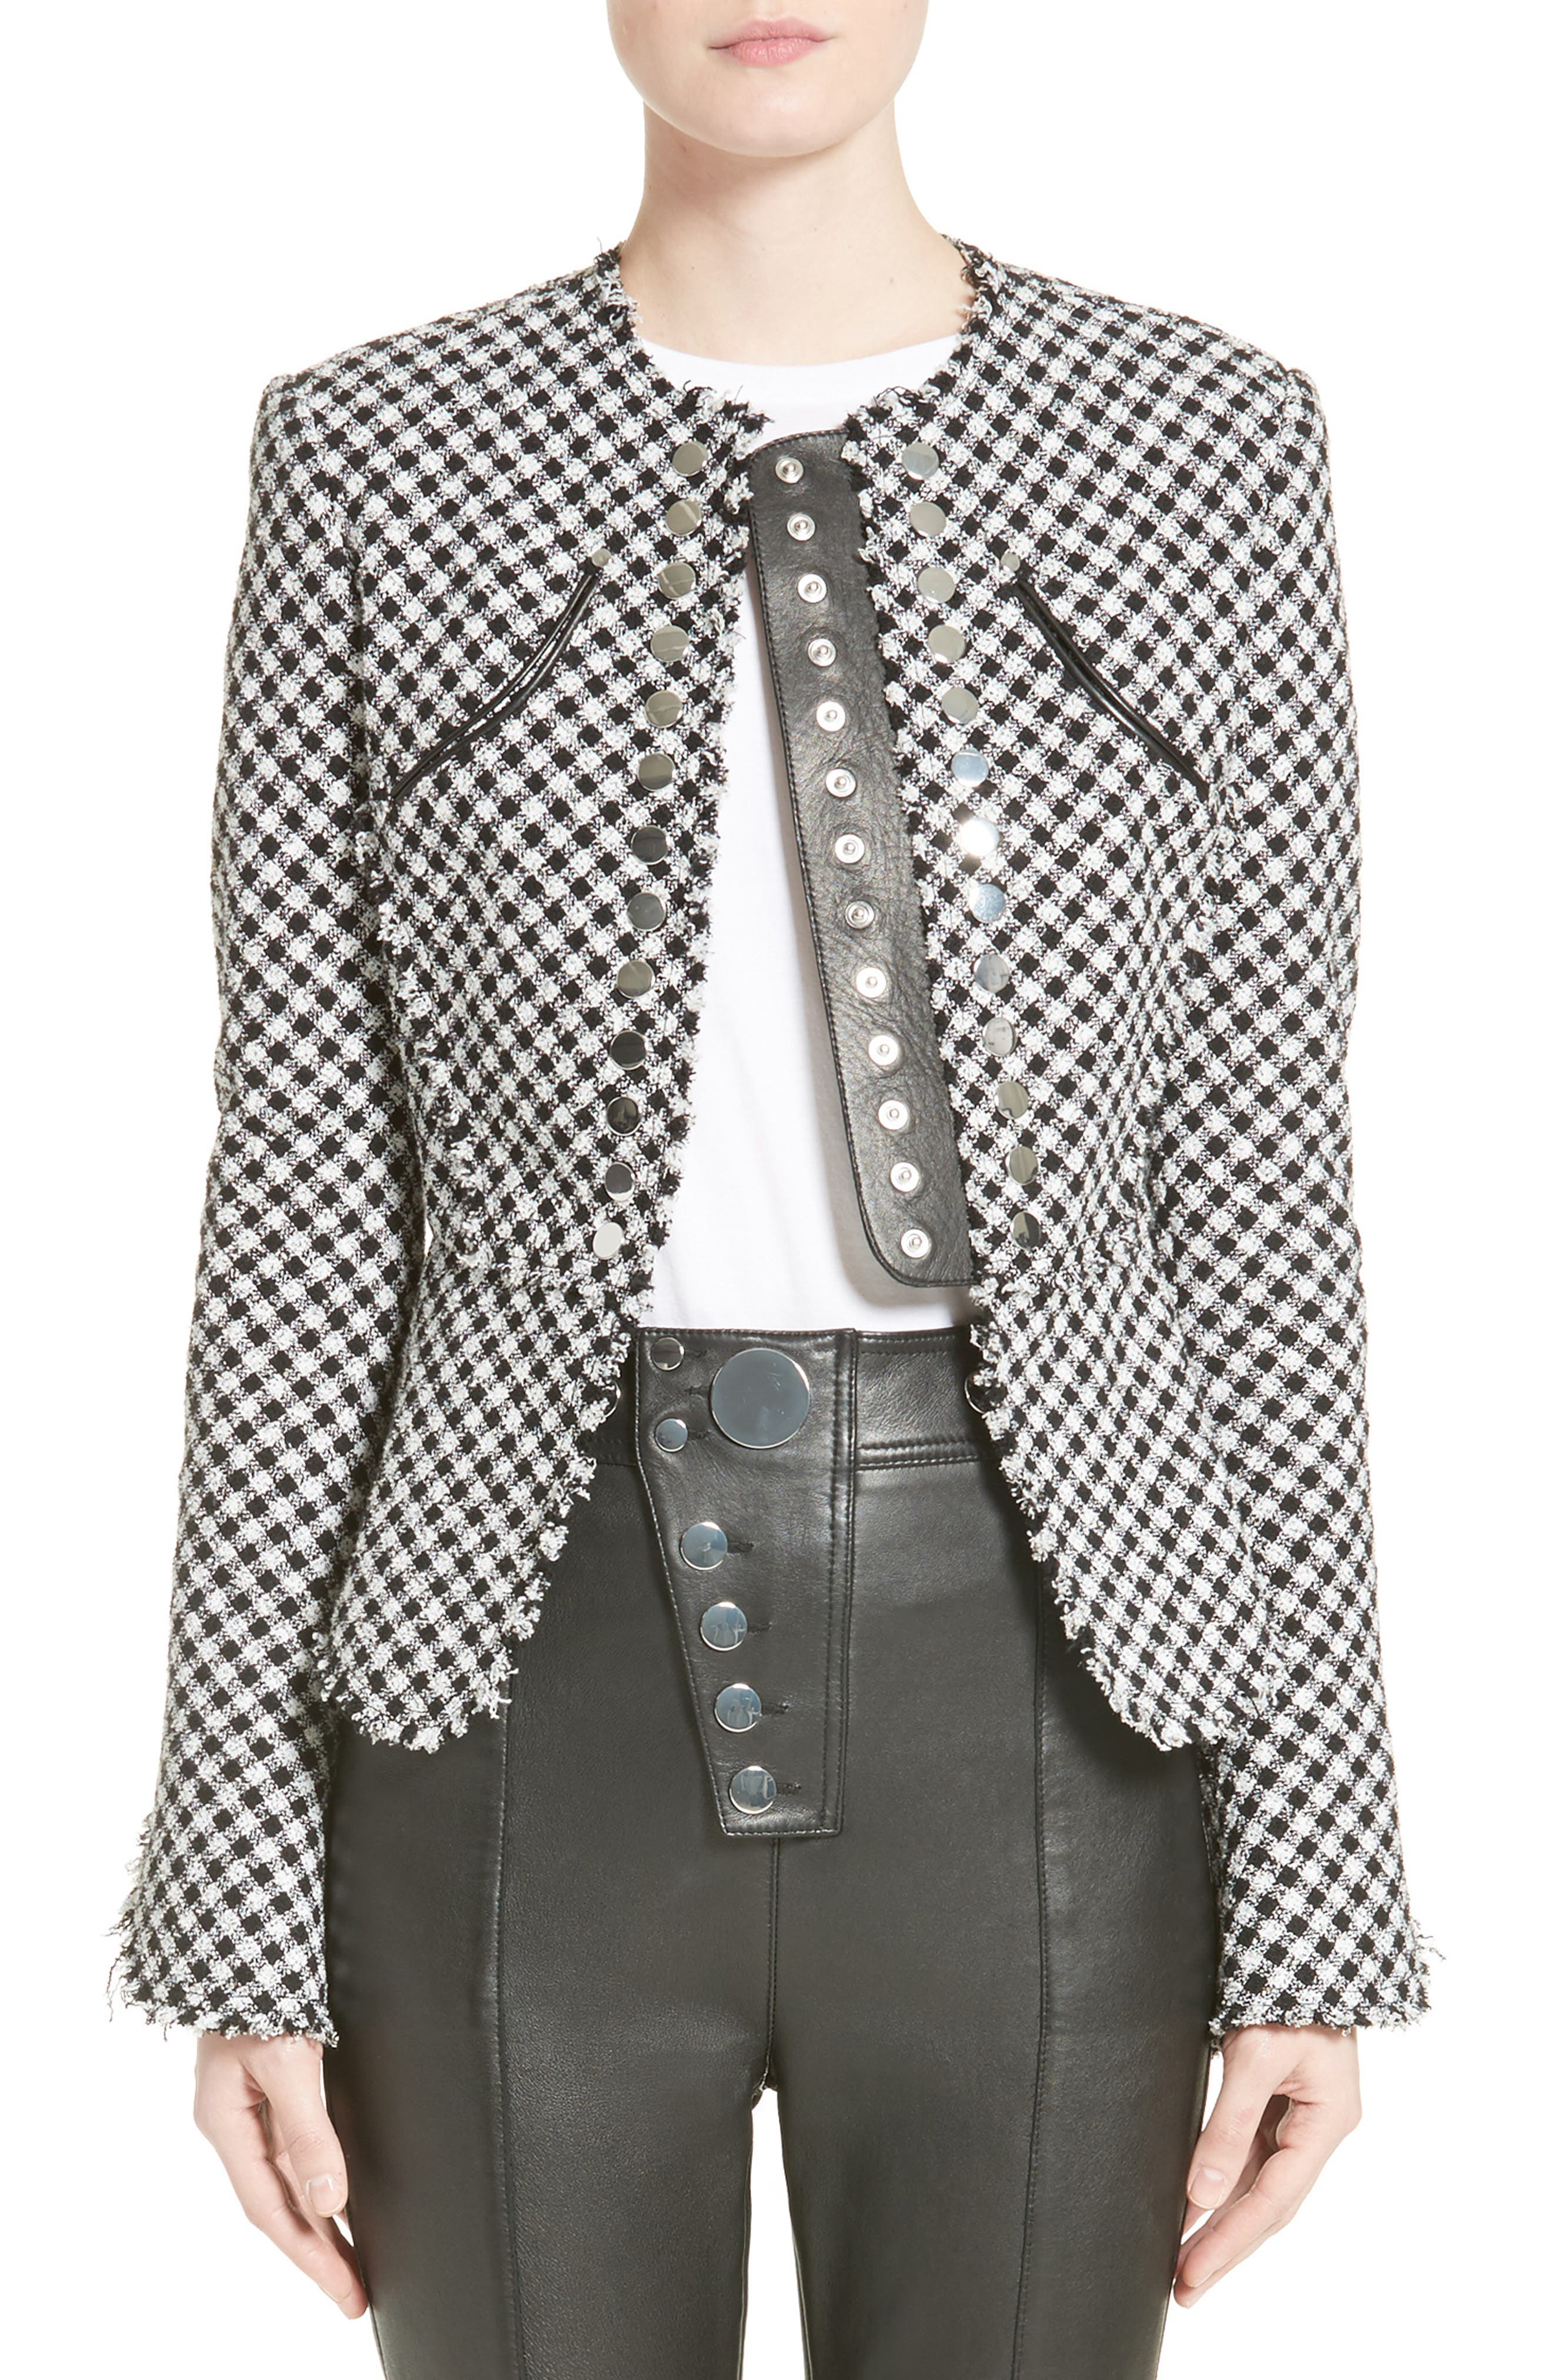 Main Image - Alexander Wang Check Tweed Peplum Jacket